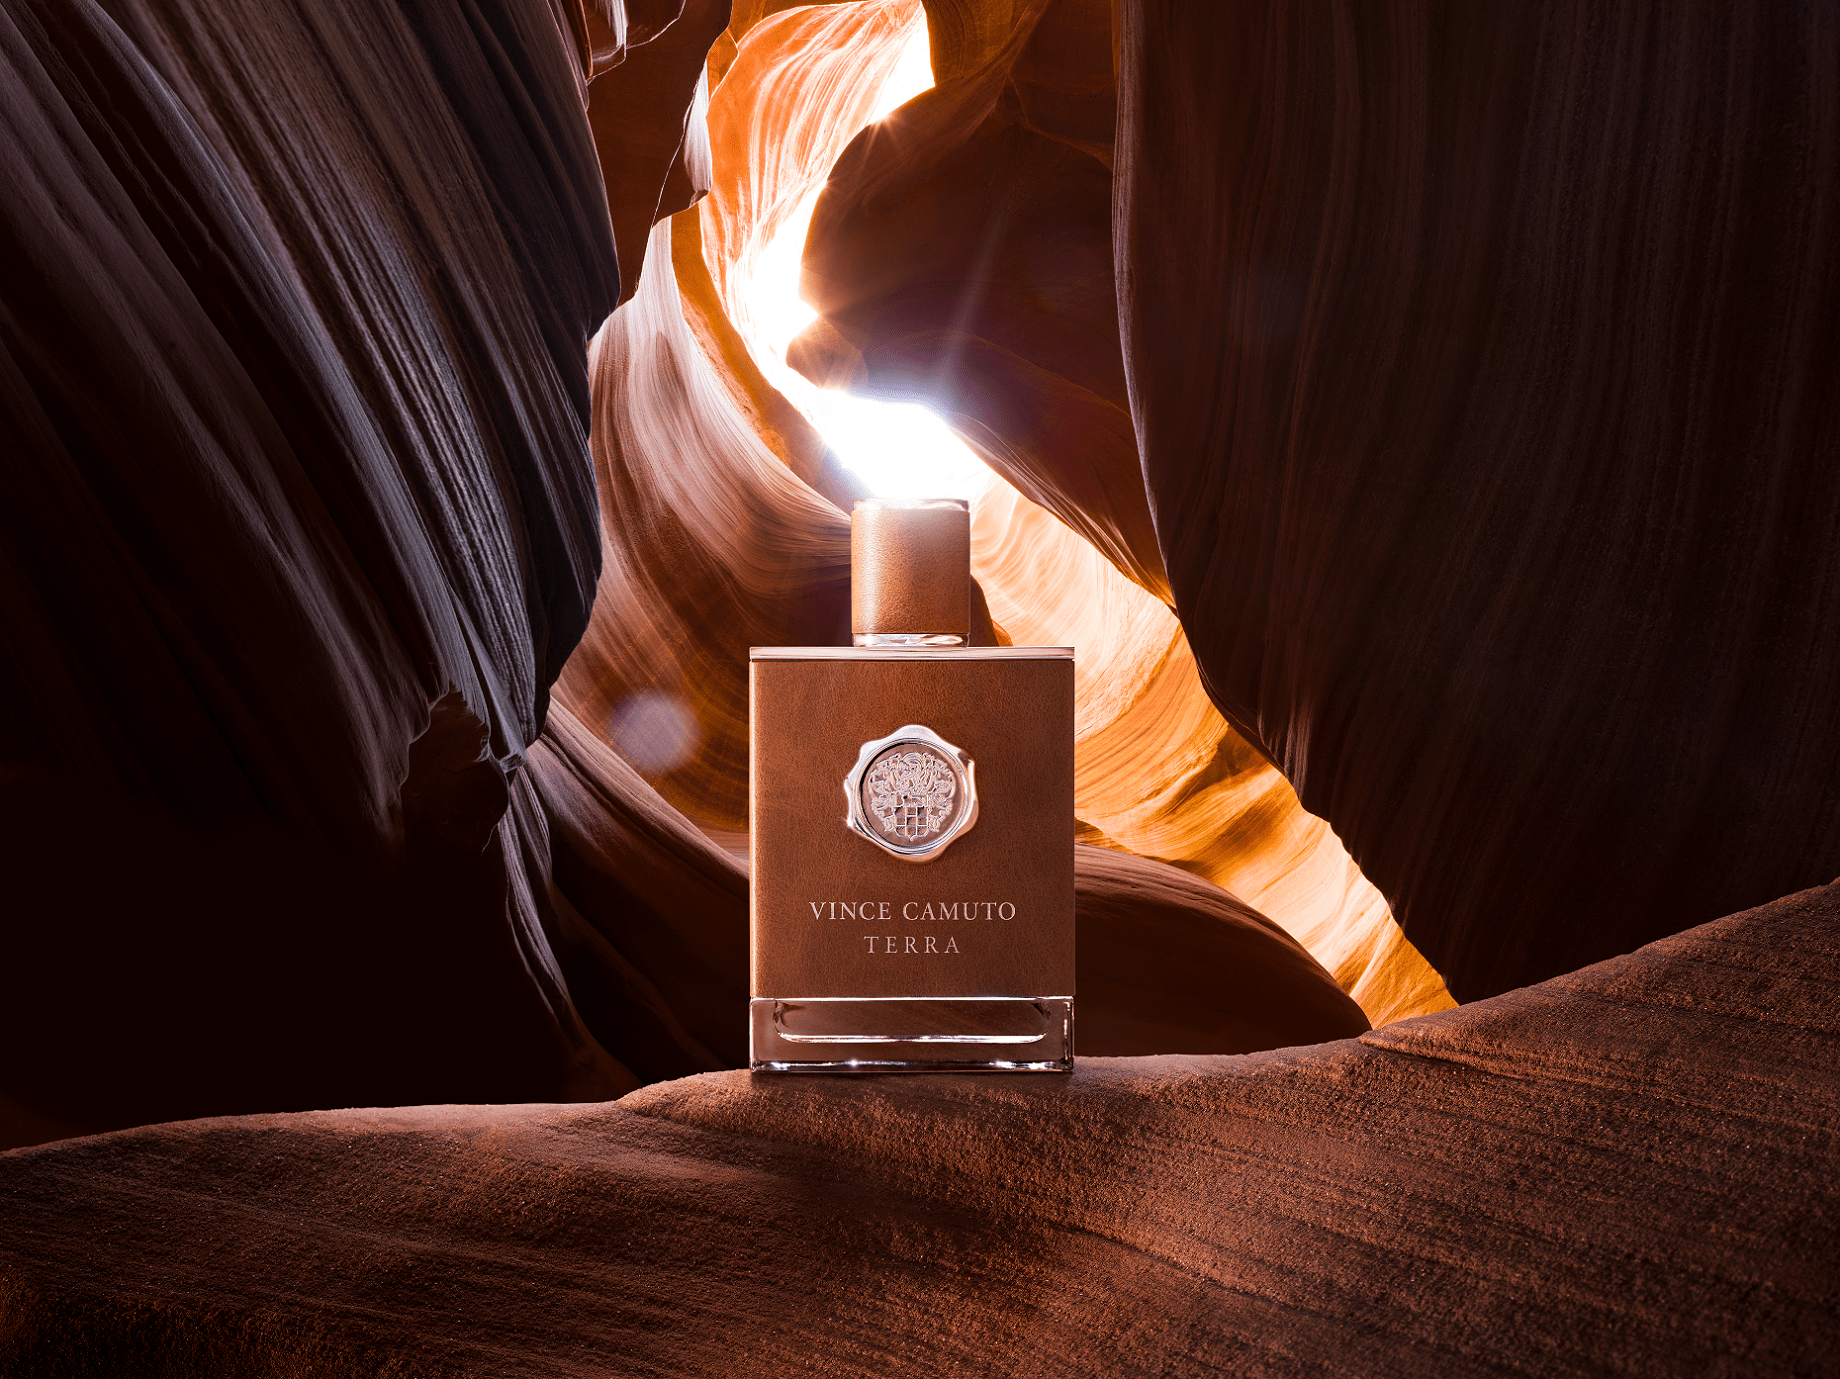 Cologne of the Month: Terra by Vince Camuto